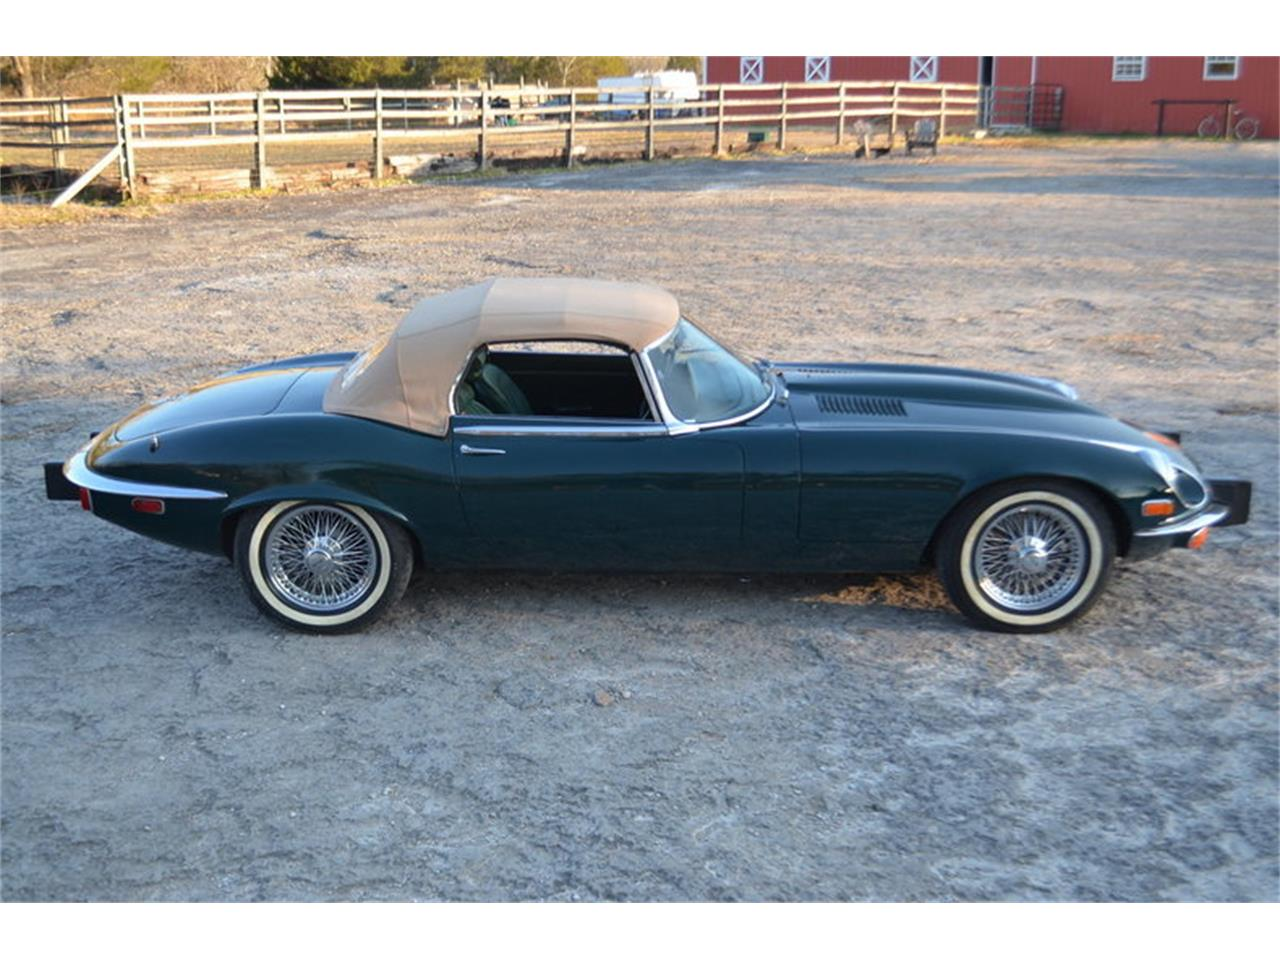 Large Picture of 1974 Jaguar E-Type located in Tennessee - $72,500.00 Offered by Frazier Motor Car Company - MMOP